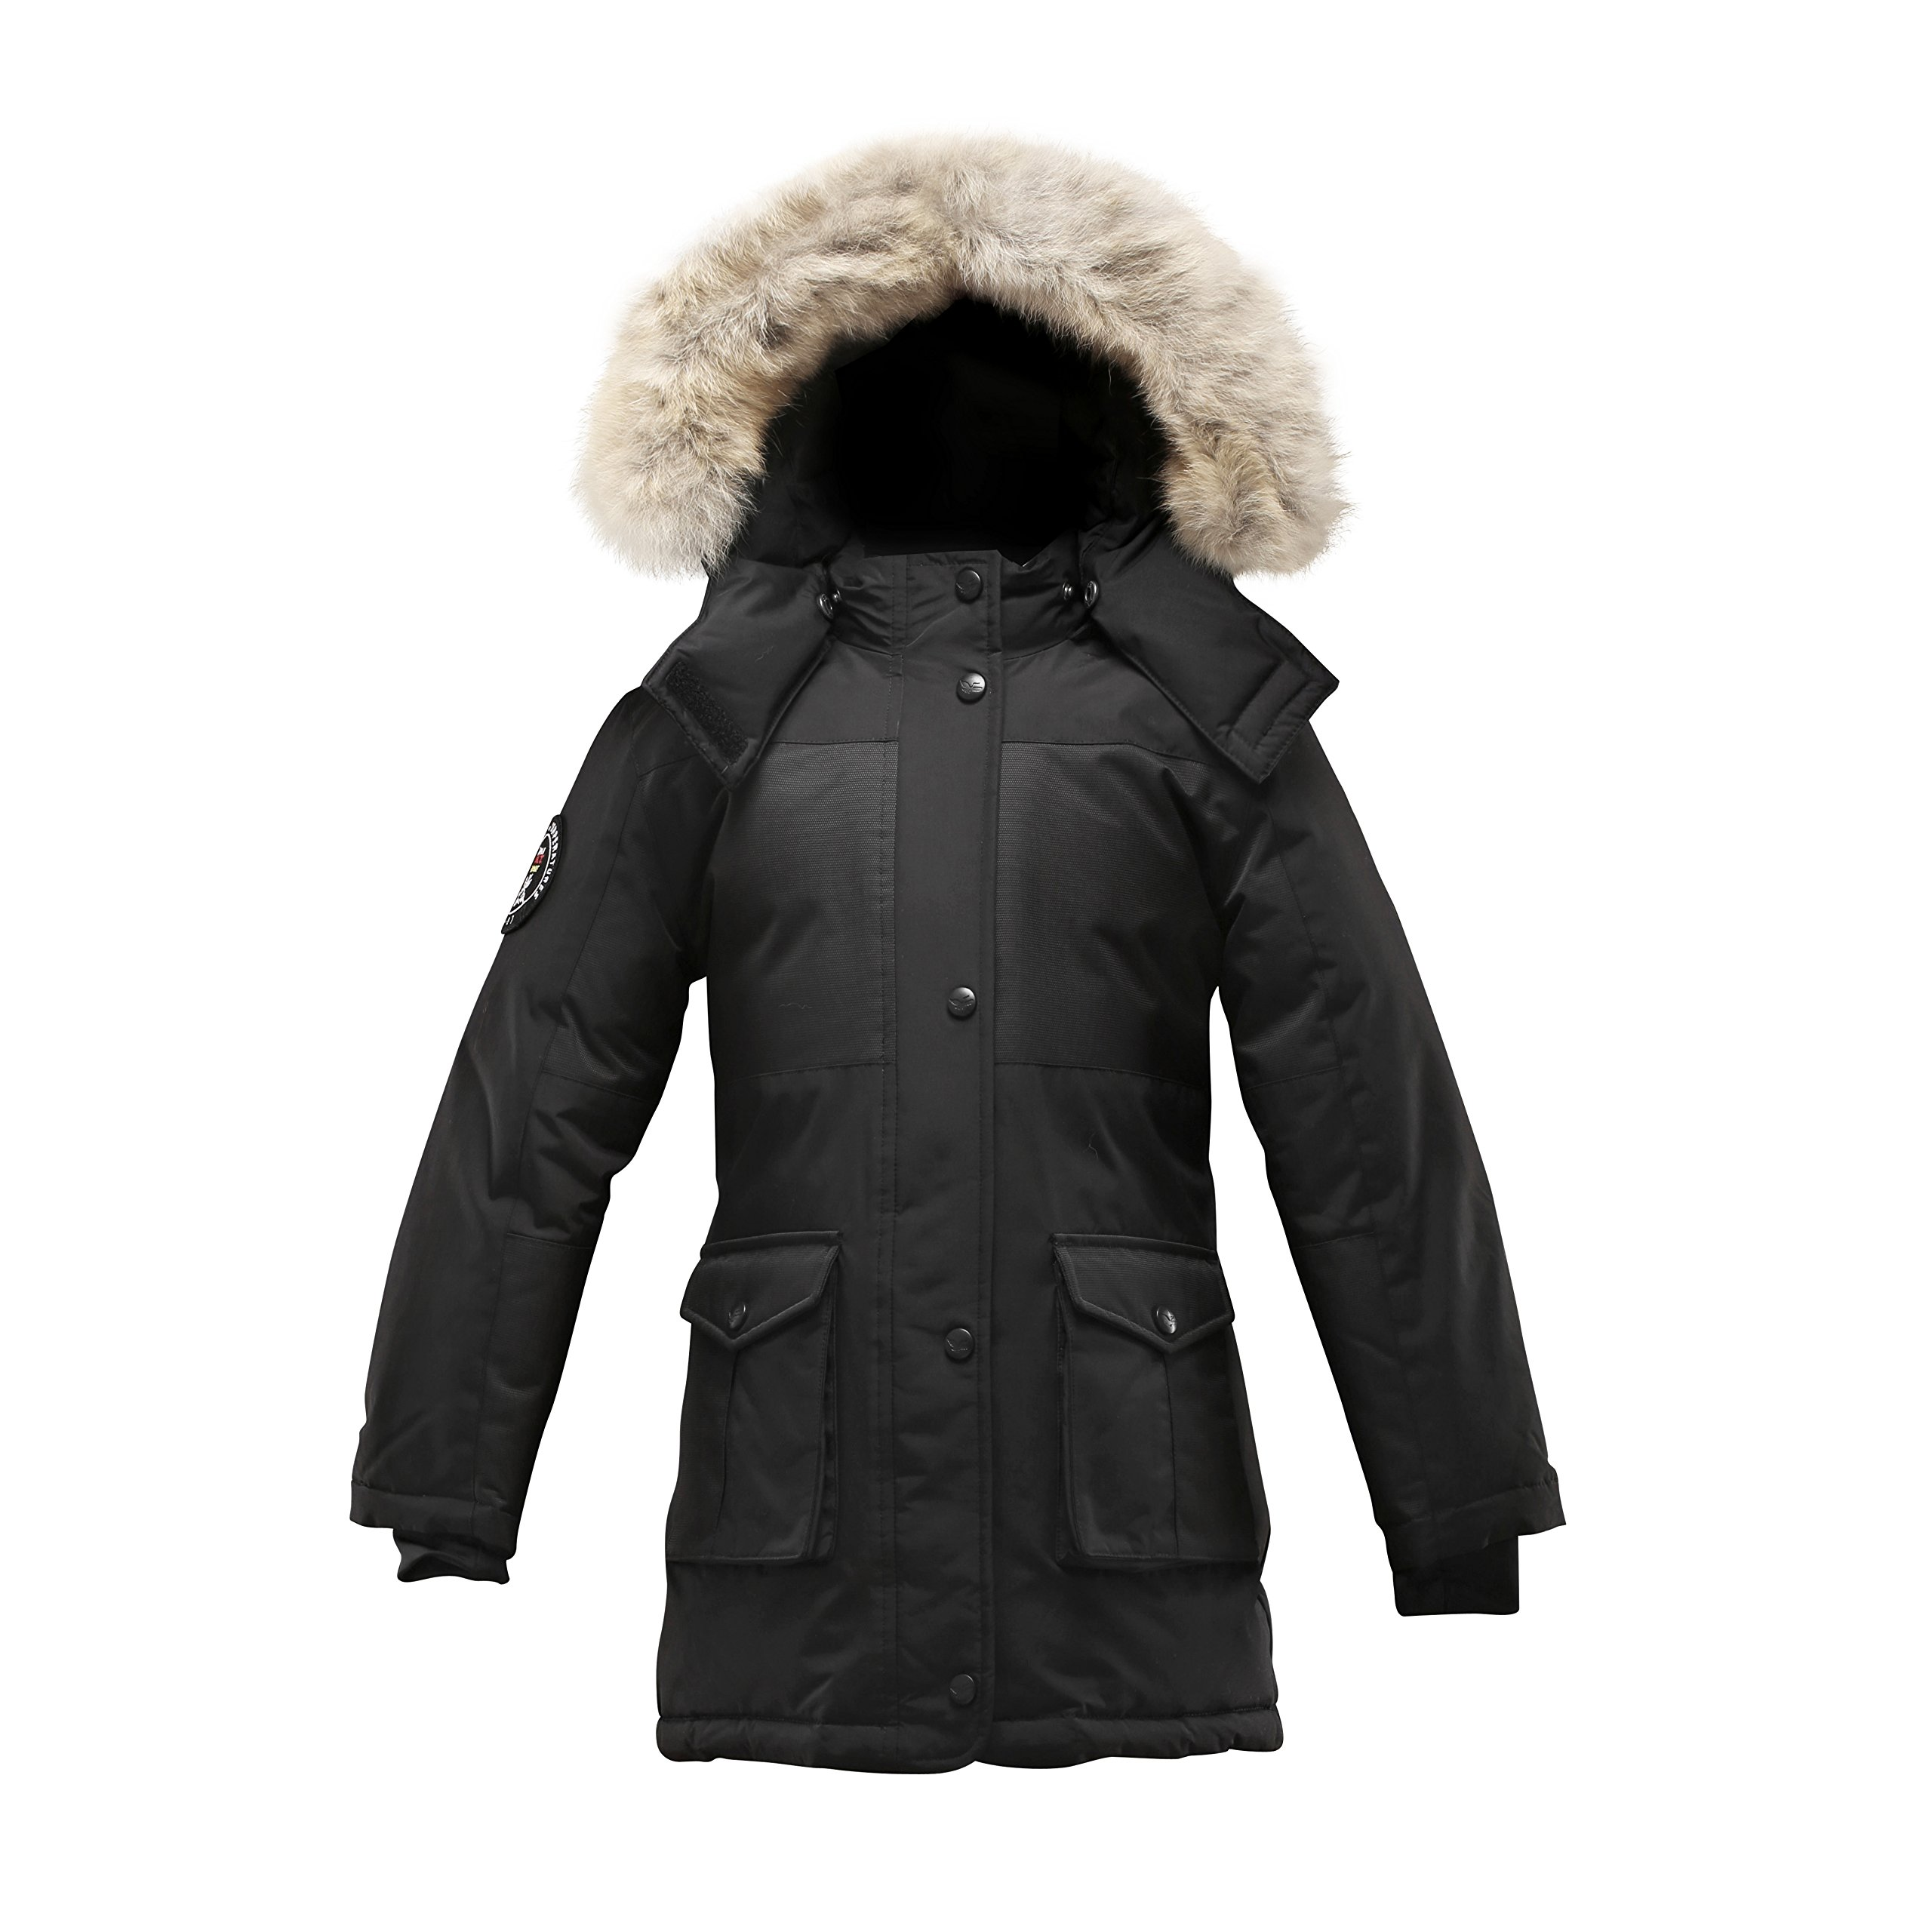 Triple F.A.T. Goose Madigan Girls Hooded Down Jacket Parka with Real Coyote Fur (6, Black)